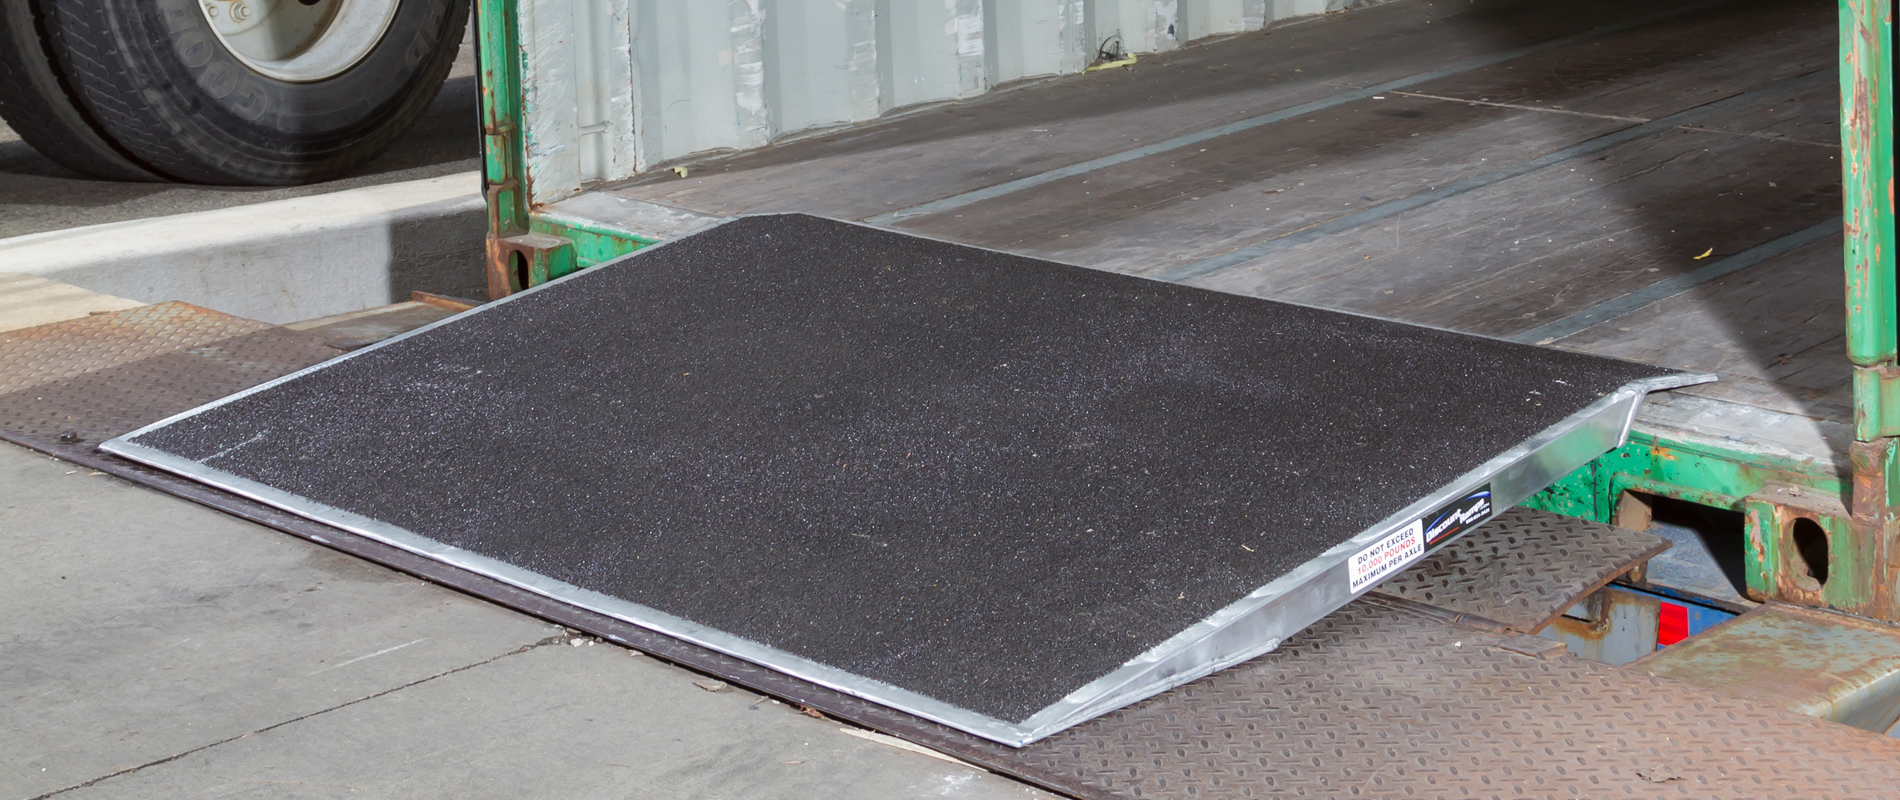 Container Ramps Heavy Duty Ramps Llc